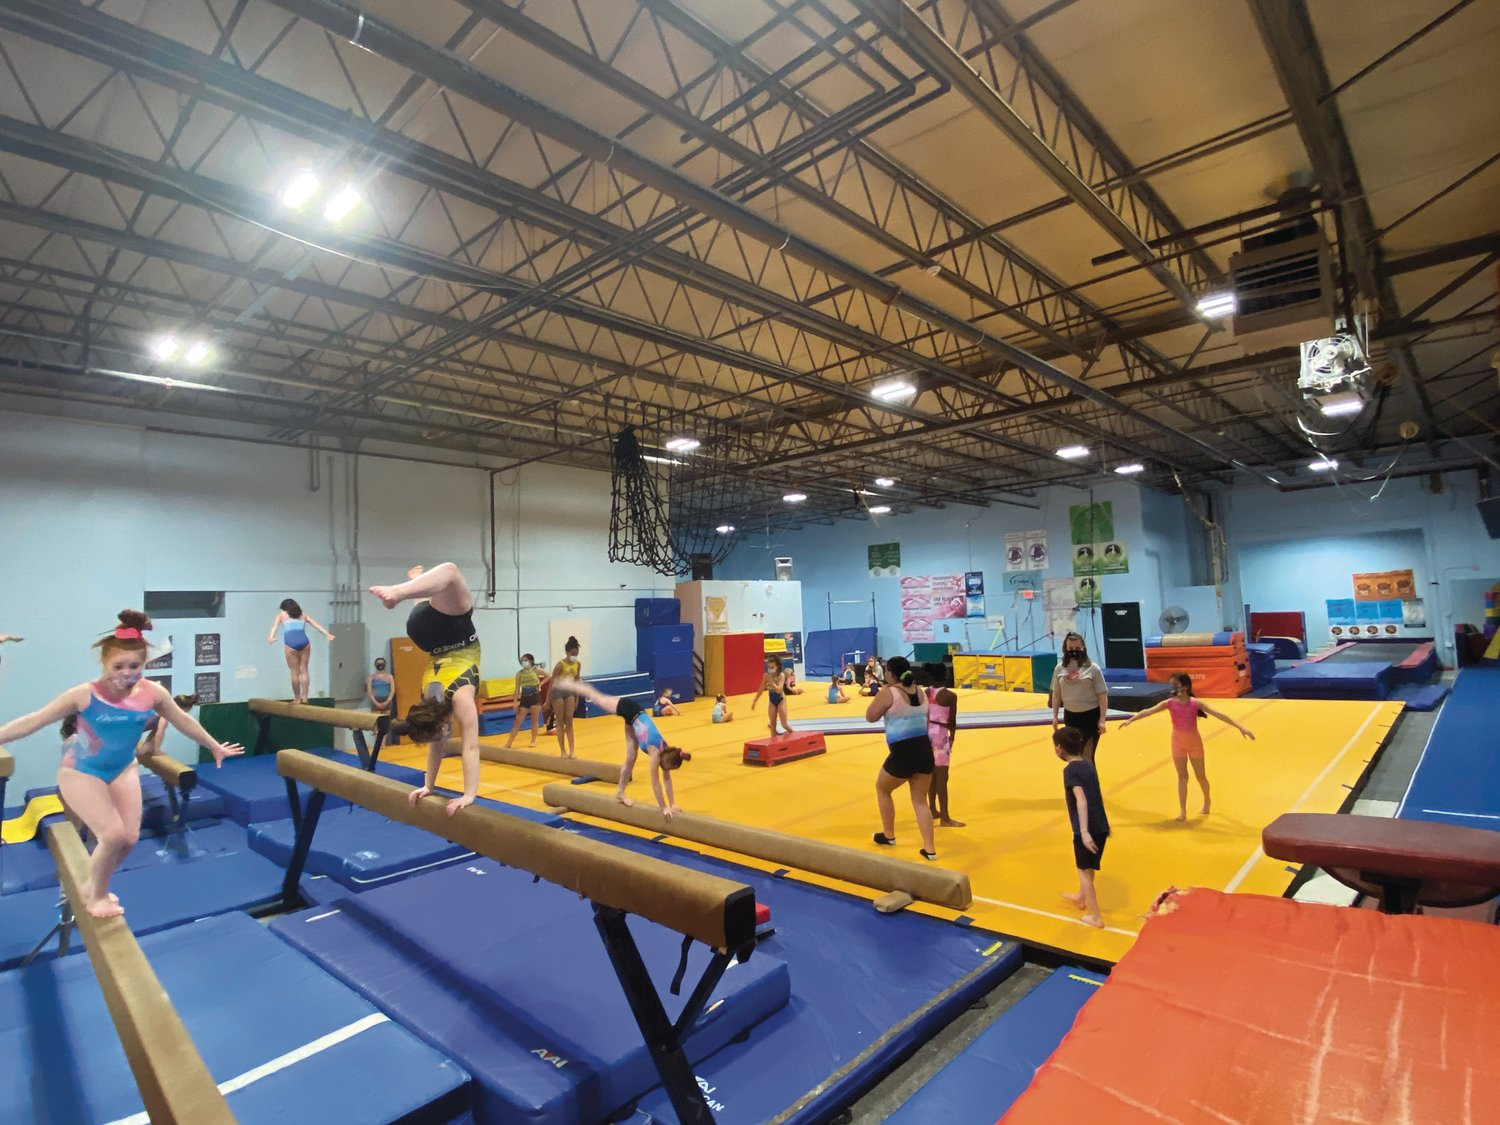 OVERCOMING THE CHALLENGE: Despite the challenges of COVID-19, Dream Big Gymnastics in Cranston has experienced great success. Its enrollment numbers are at an all-time high.